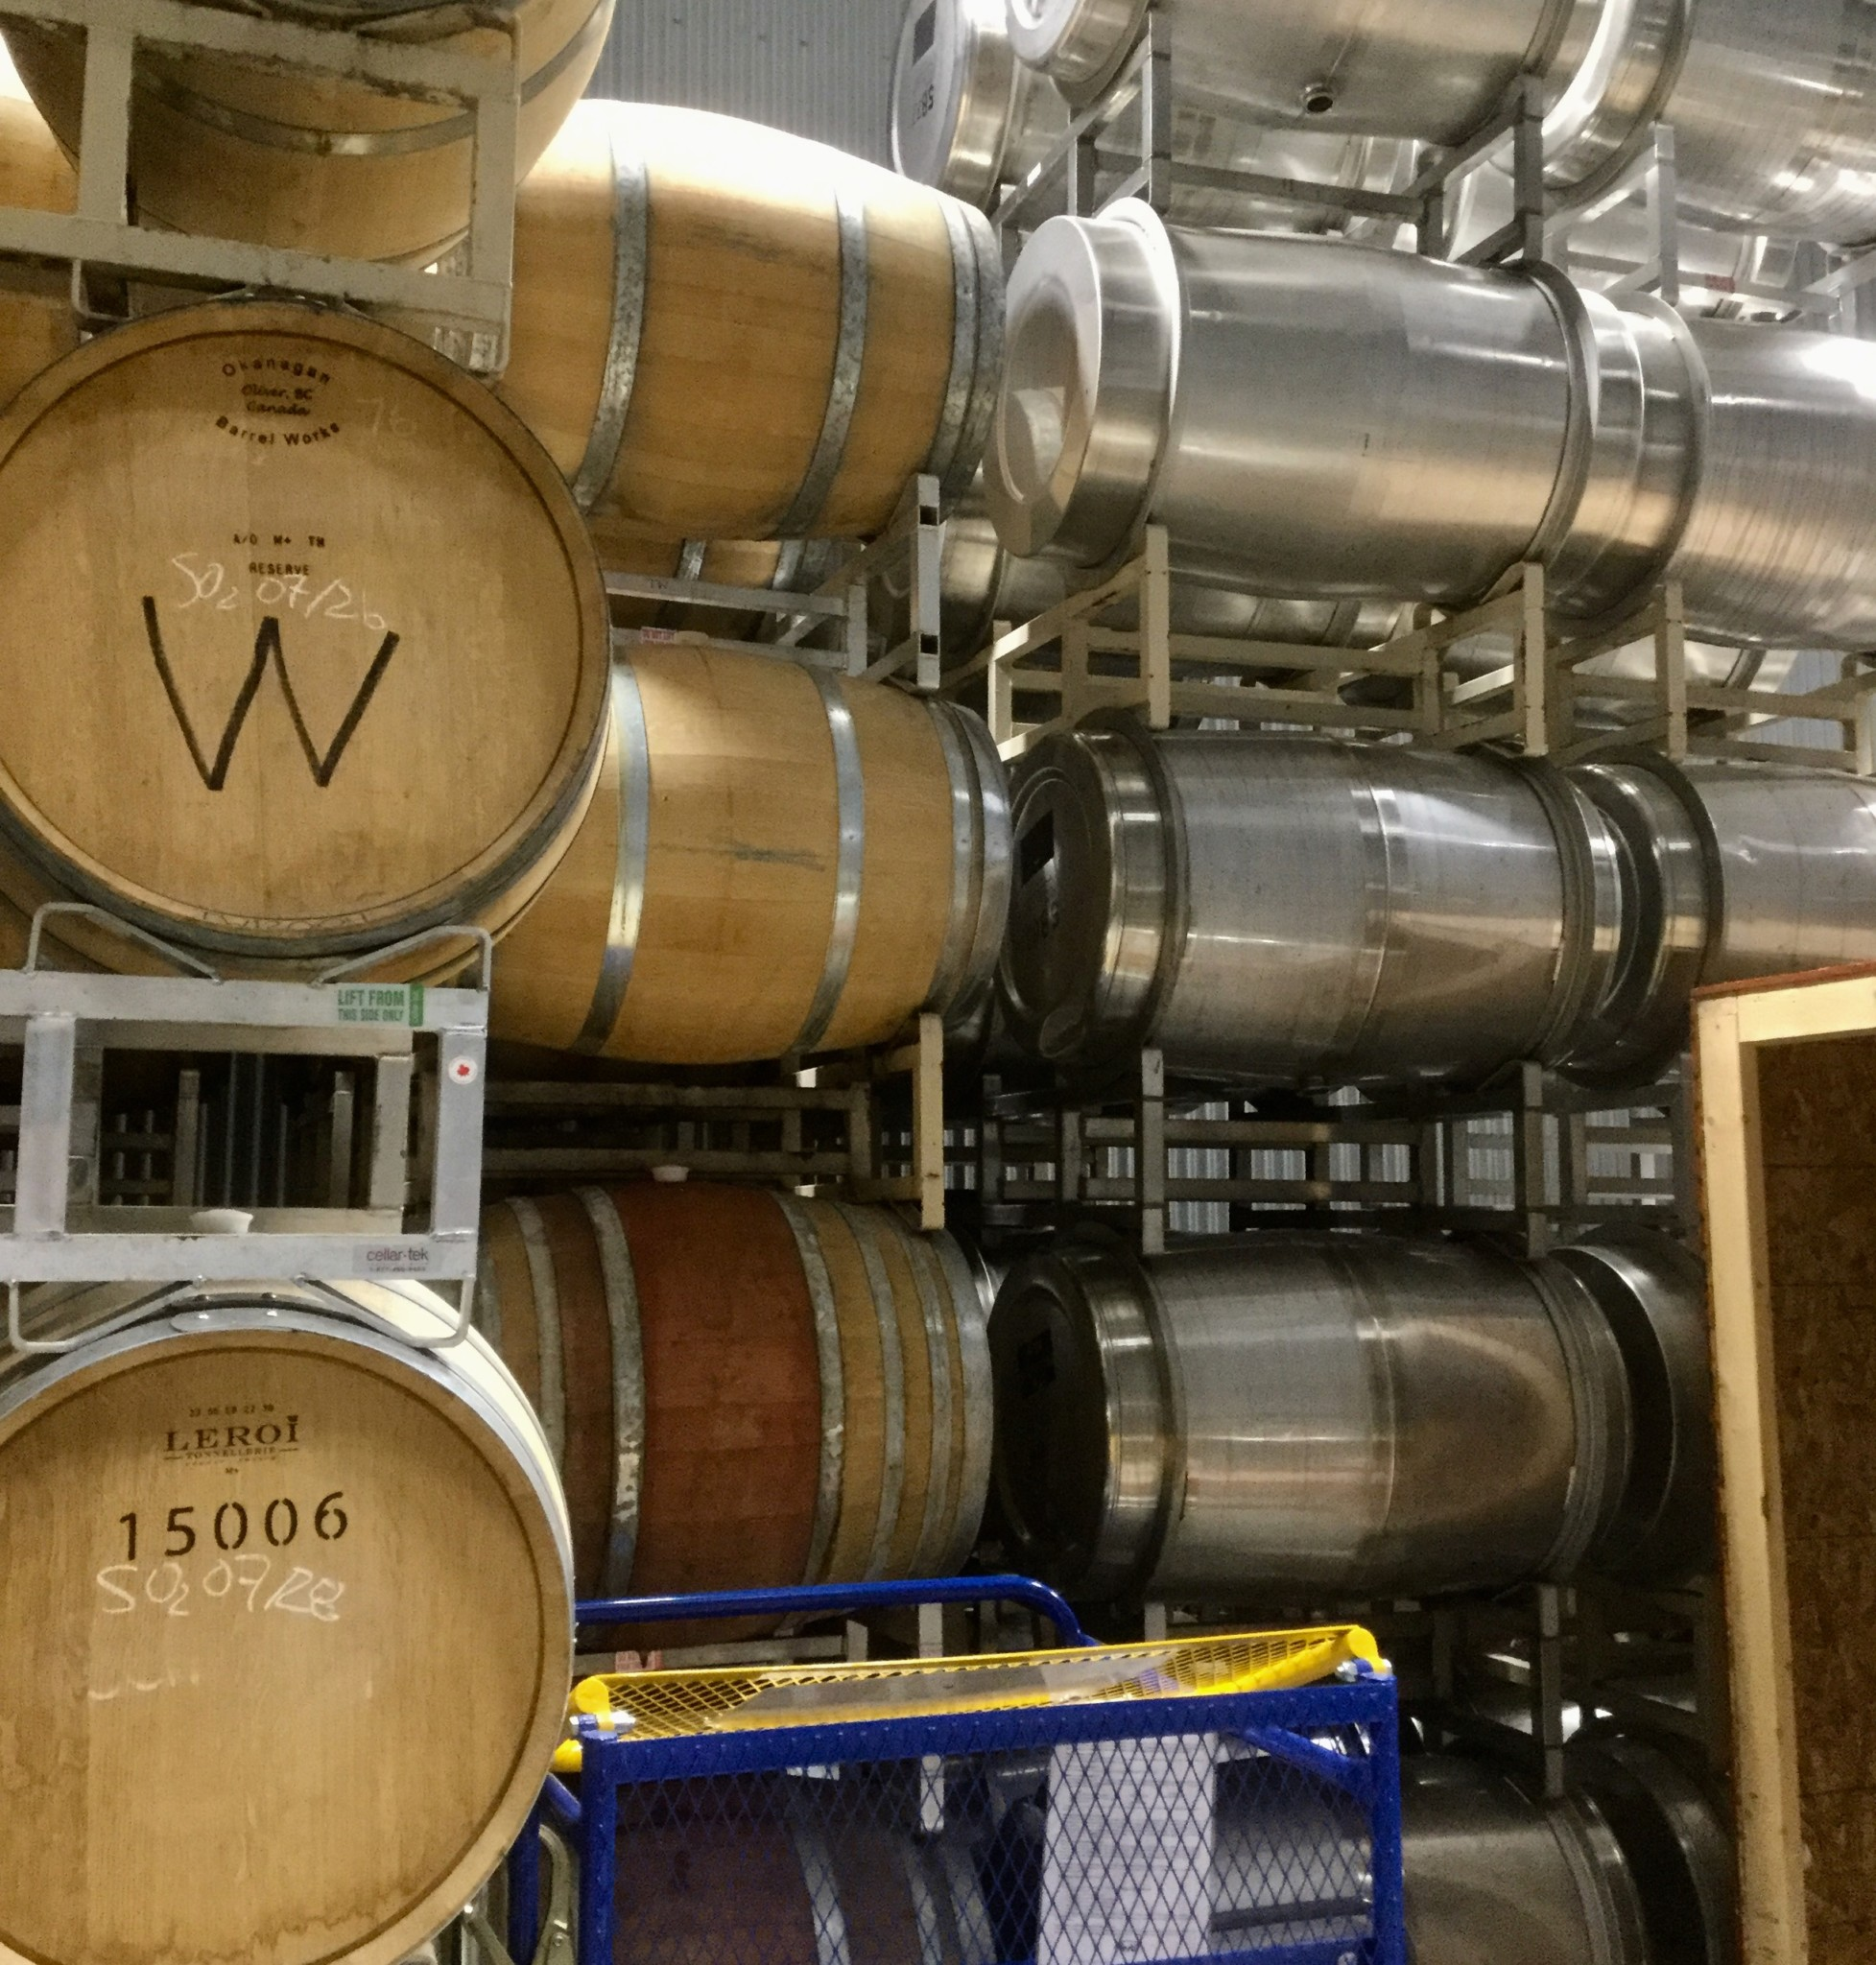 Interview With Harry McWatters of TIME Estate Winery